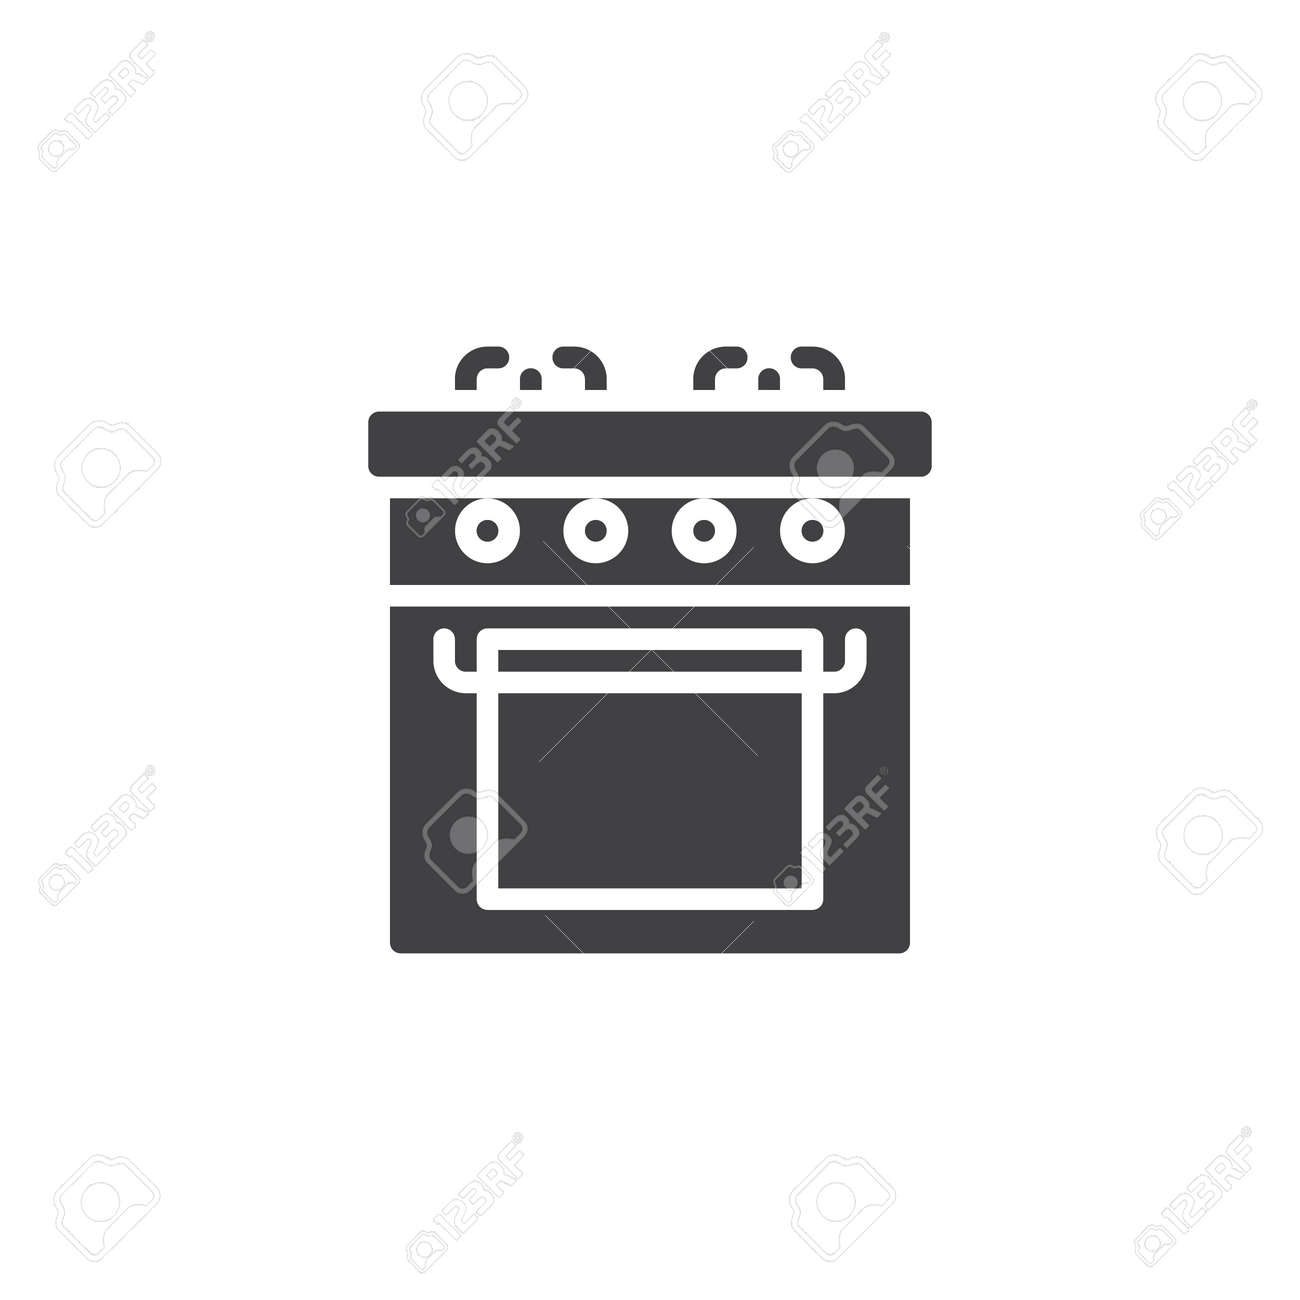 Gas stove vector icon. filled flat sign for mobile concept and.. on mobile home wall oven, mobile home humidifiers, used mobile home ovens, mobile home washing machines, mobile home in wall radio, mobile home gas ranges, mobile home stoves, mobile home oven replacement, mobile home filters, stoves and ovens, mobile home built in ovens, mobile home heat pumps, mobile home gas heaters, mobile home magic chef ovens, 1978 o'keefe merritt wall ovens, mobile home heating, mobile home kitchen appliances, mobile home furnaces, lowe's built in ovens, mobile home fans,